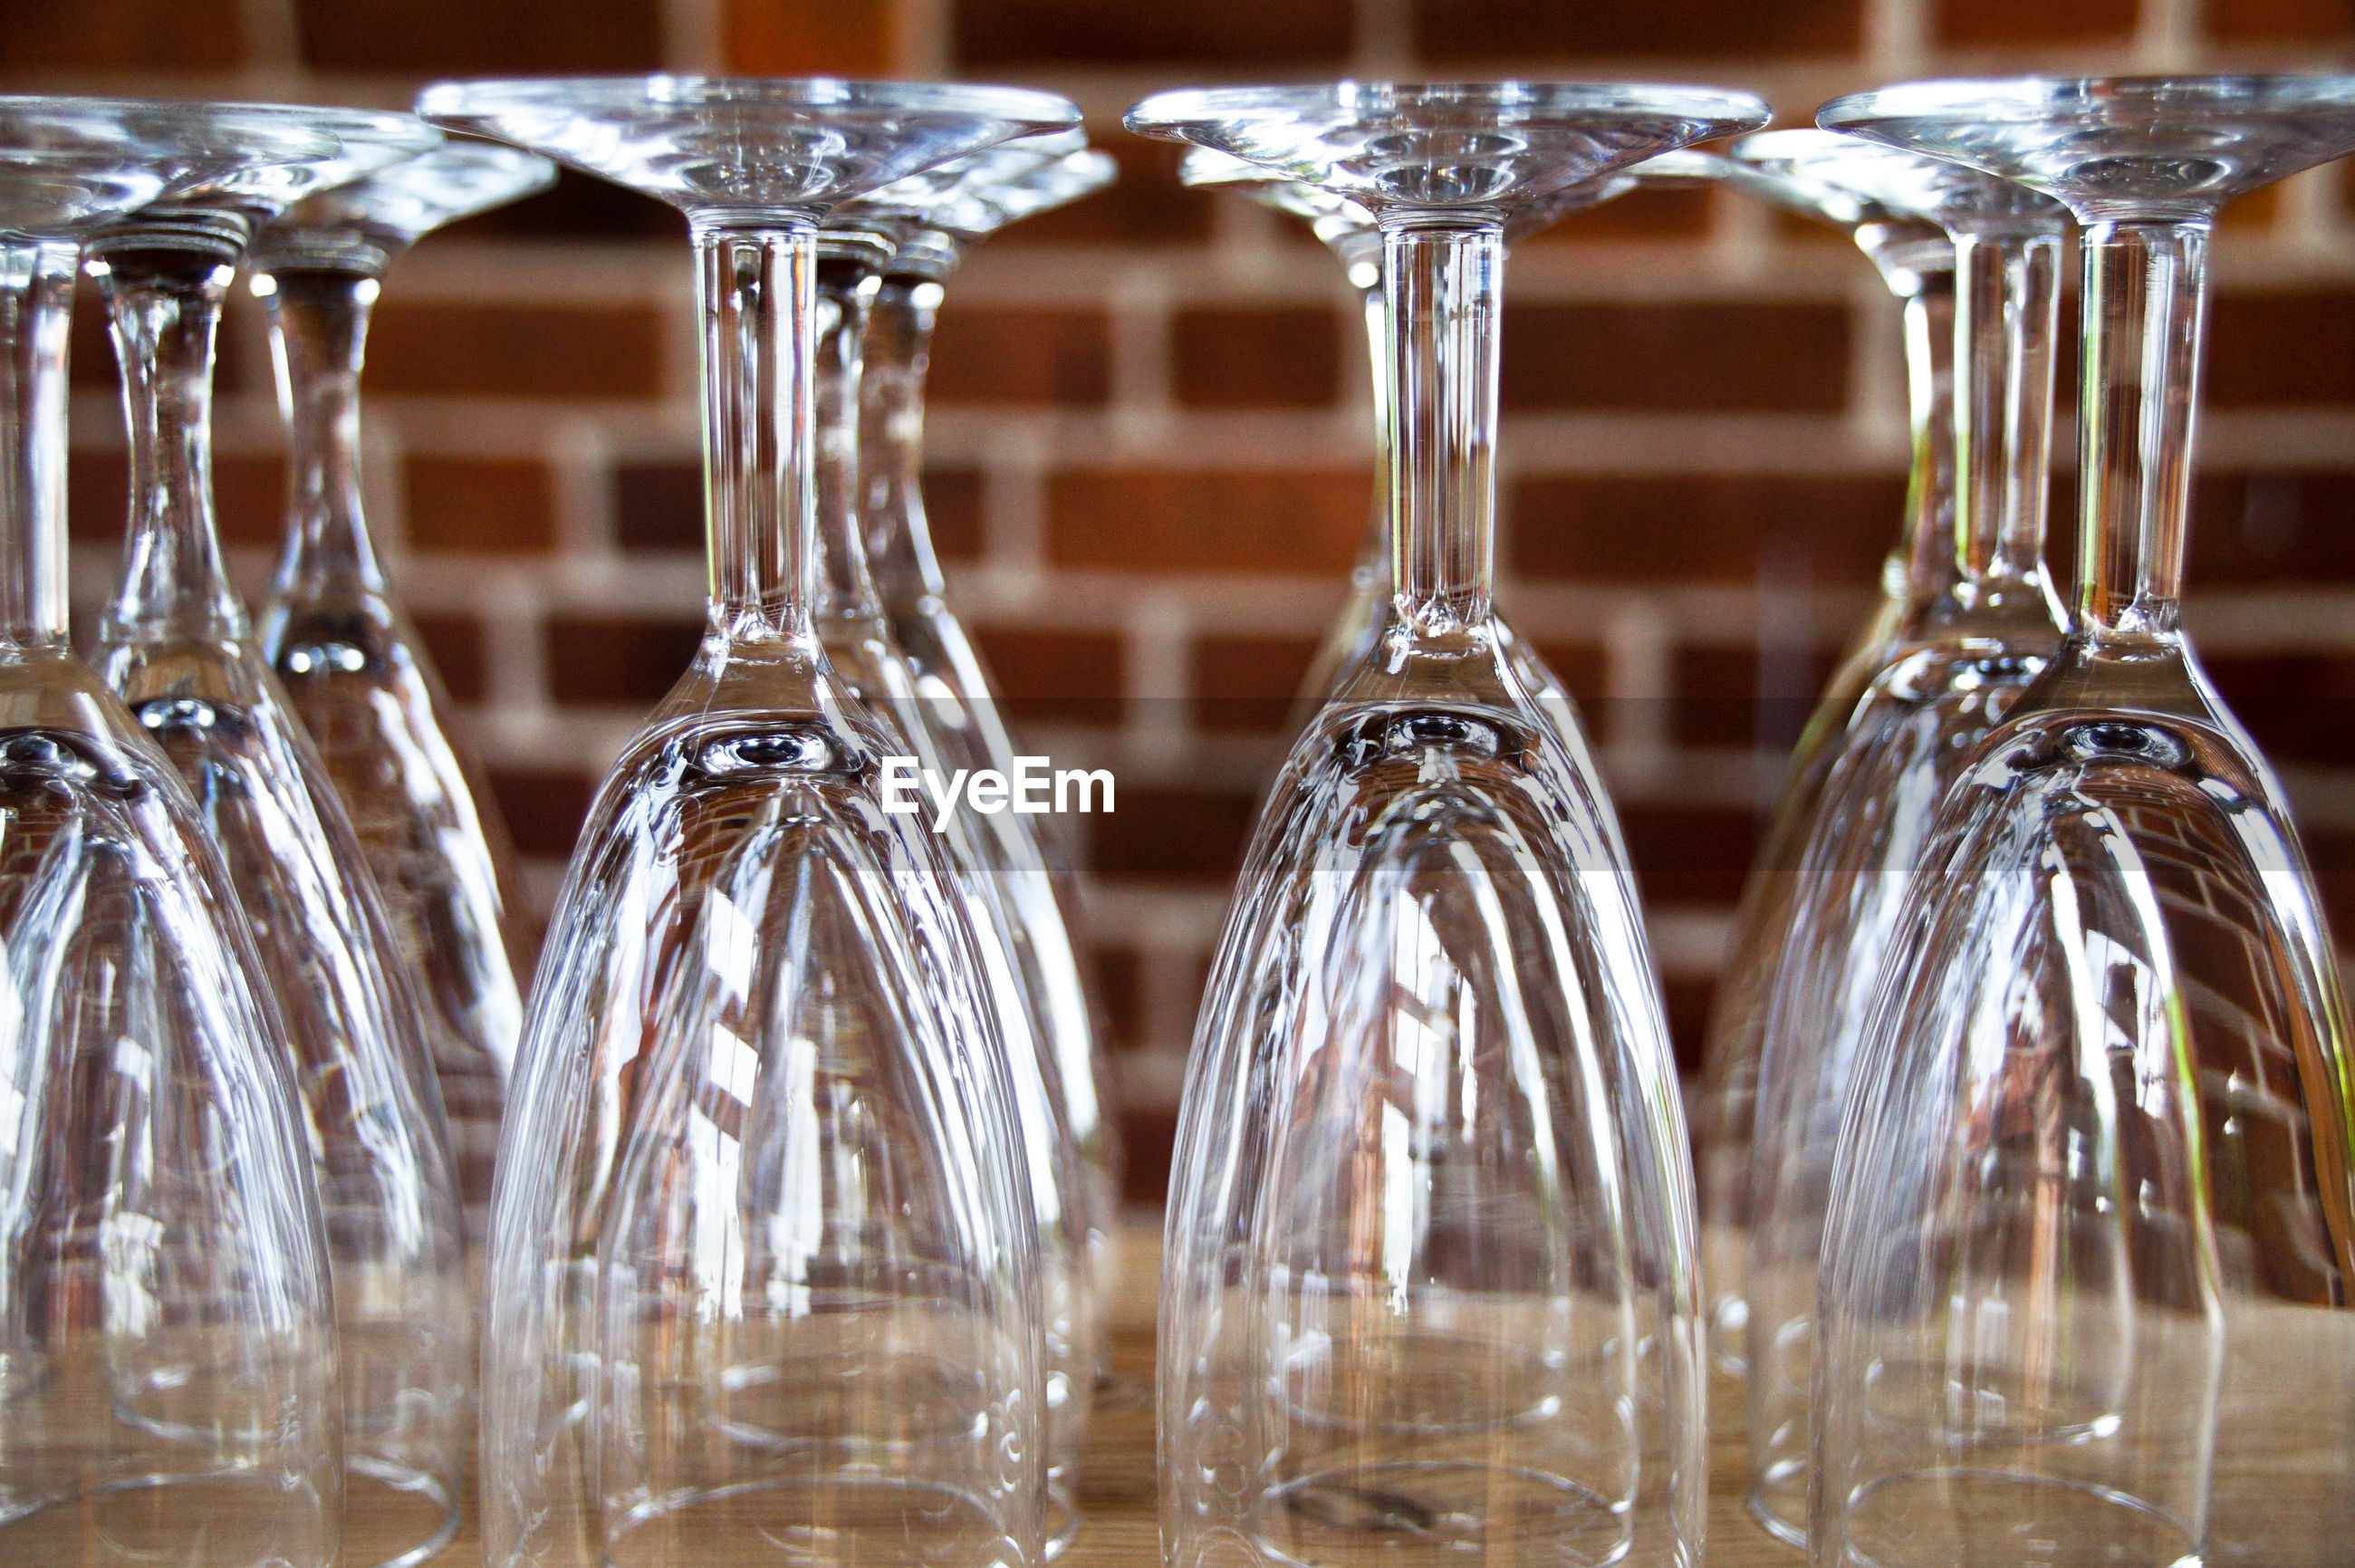 Close-up of upside down wineglasses on table